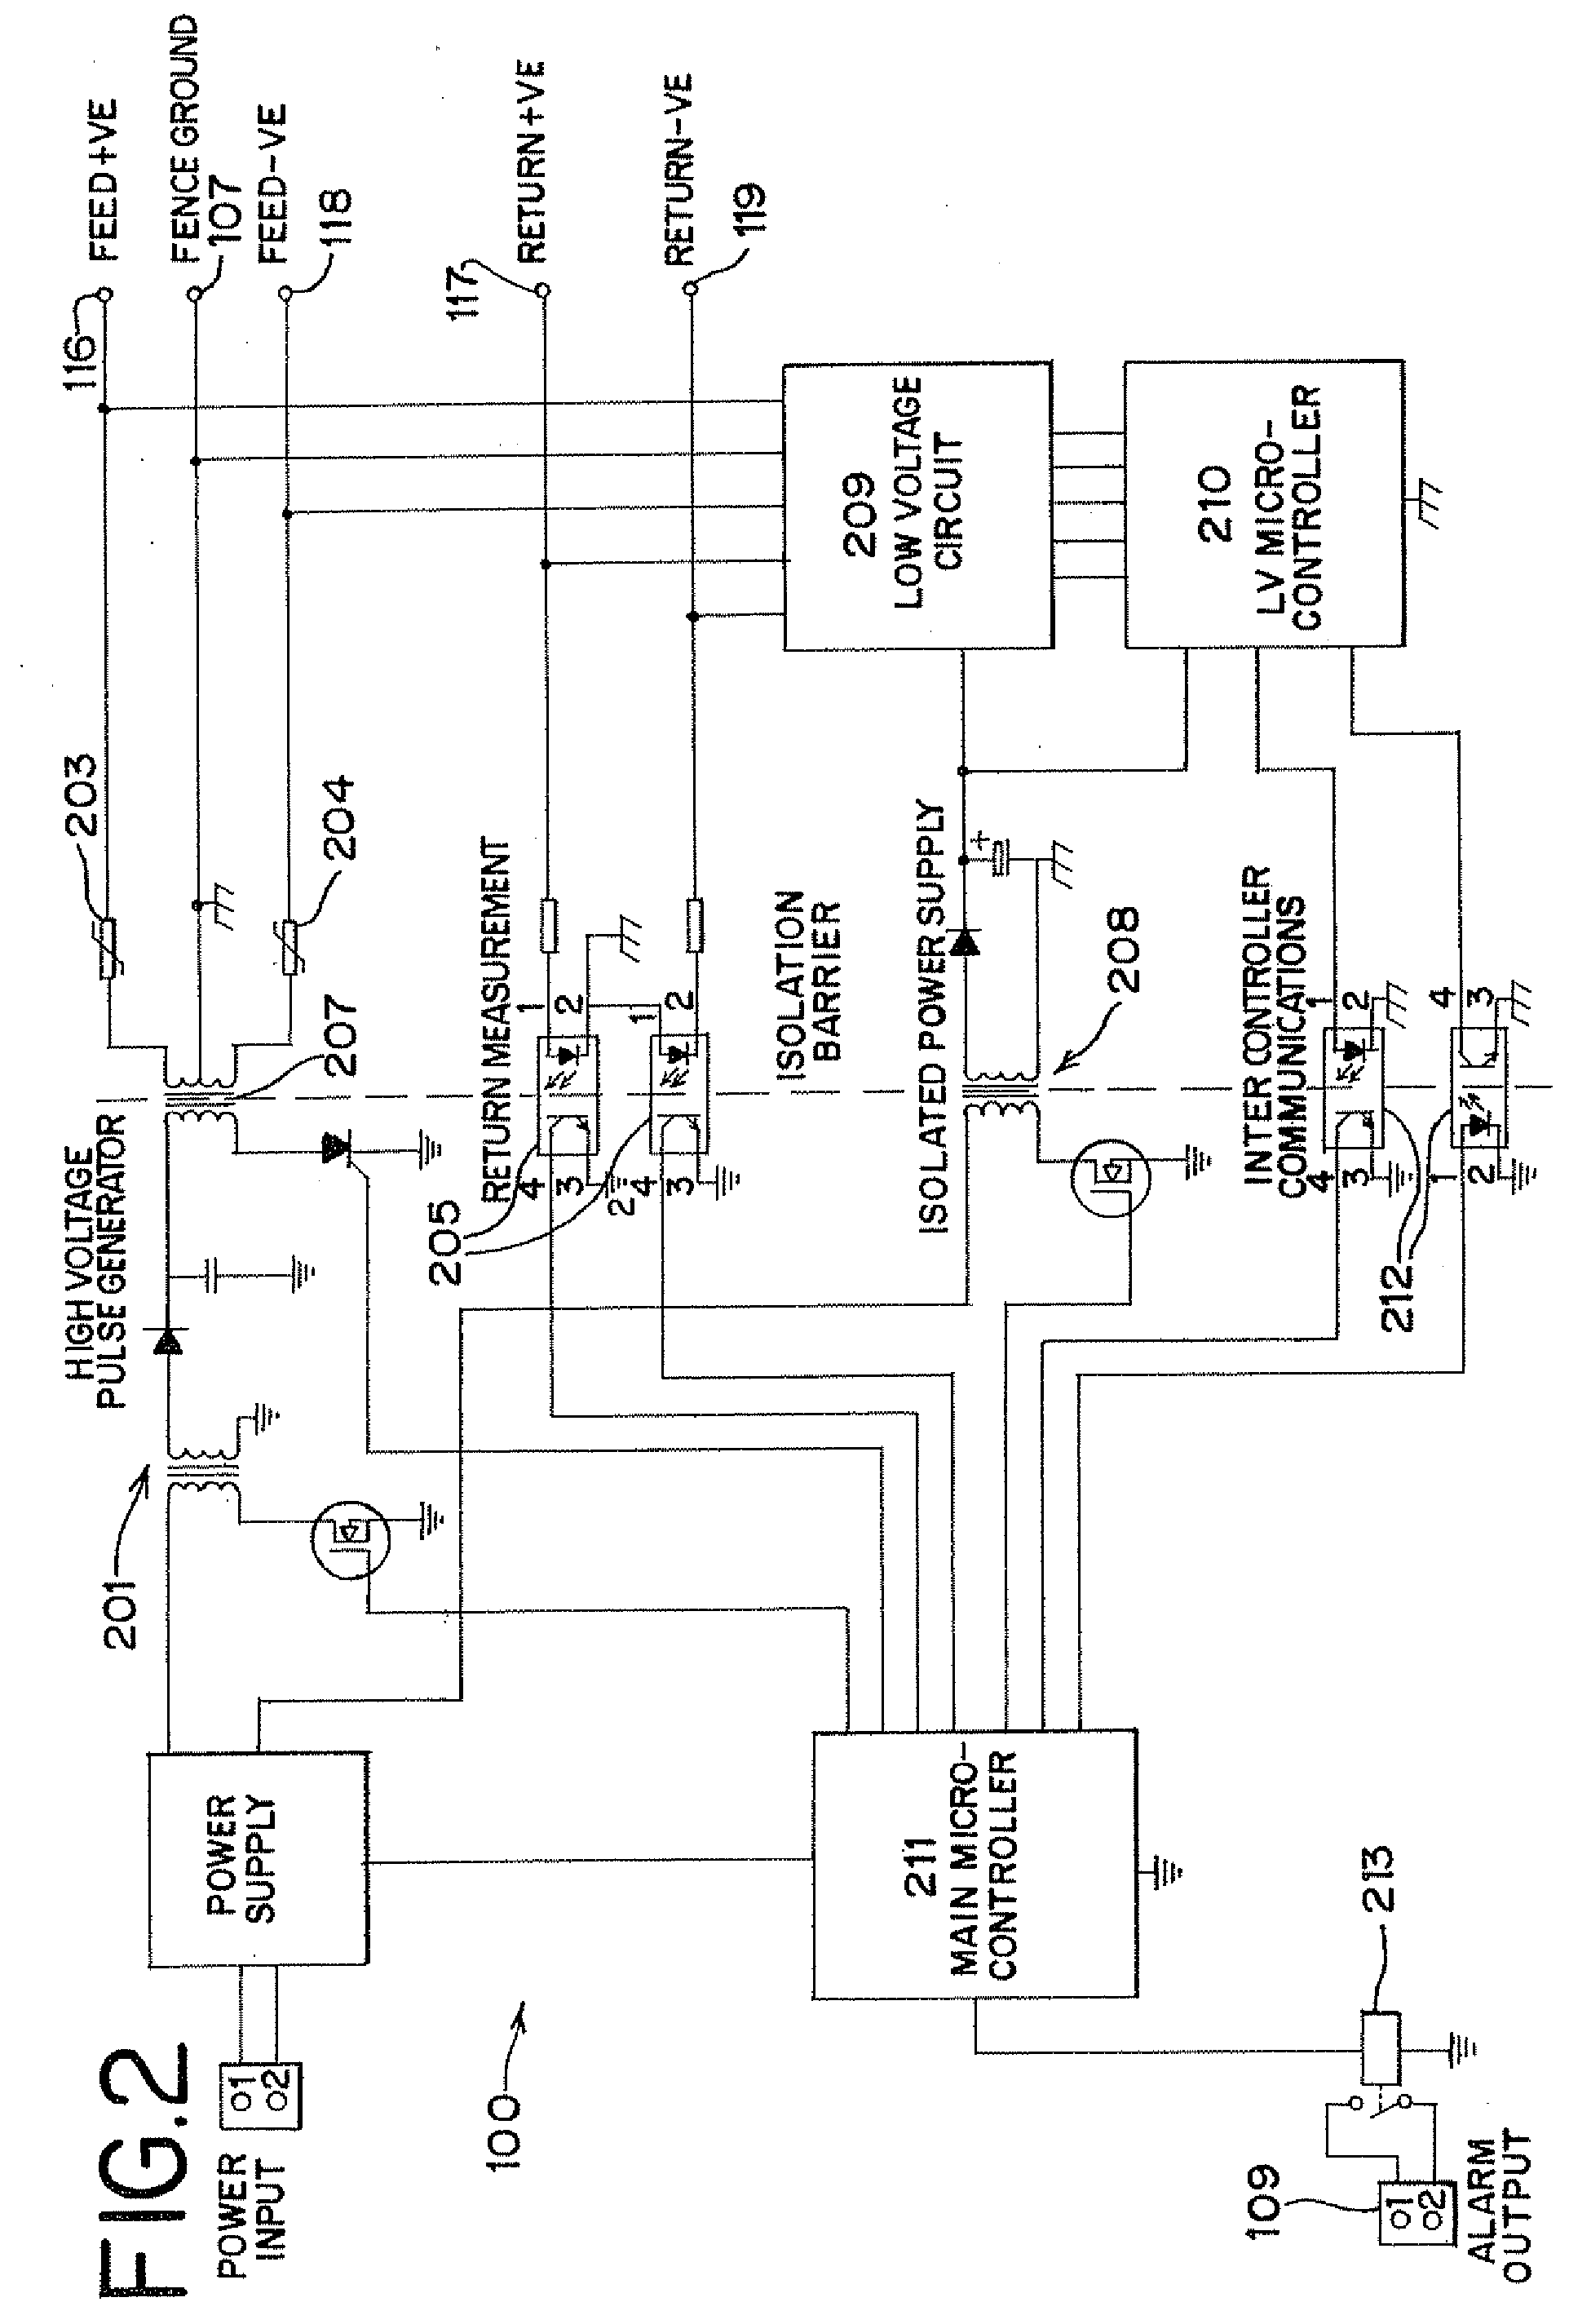 charger besides electric fence circuit diagram also electric fence